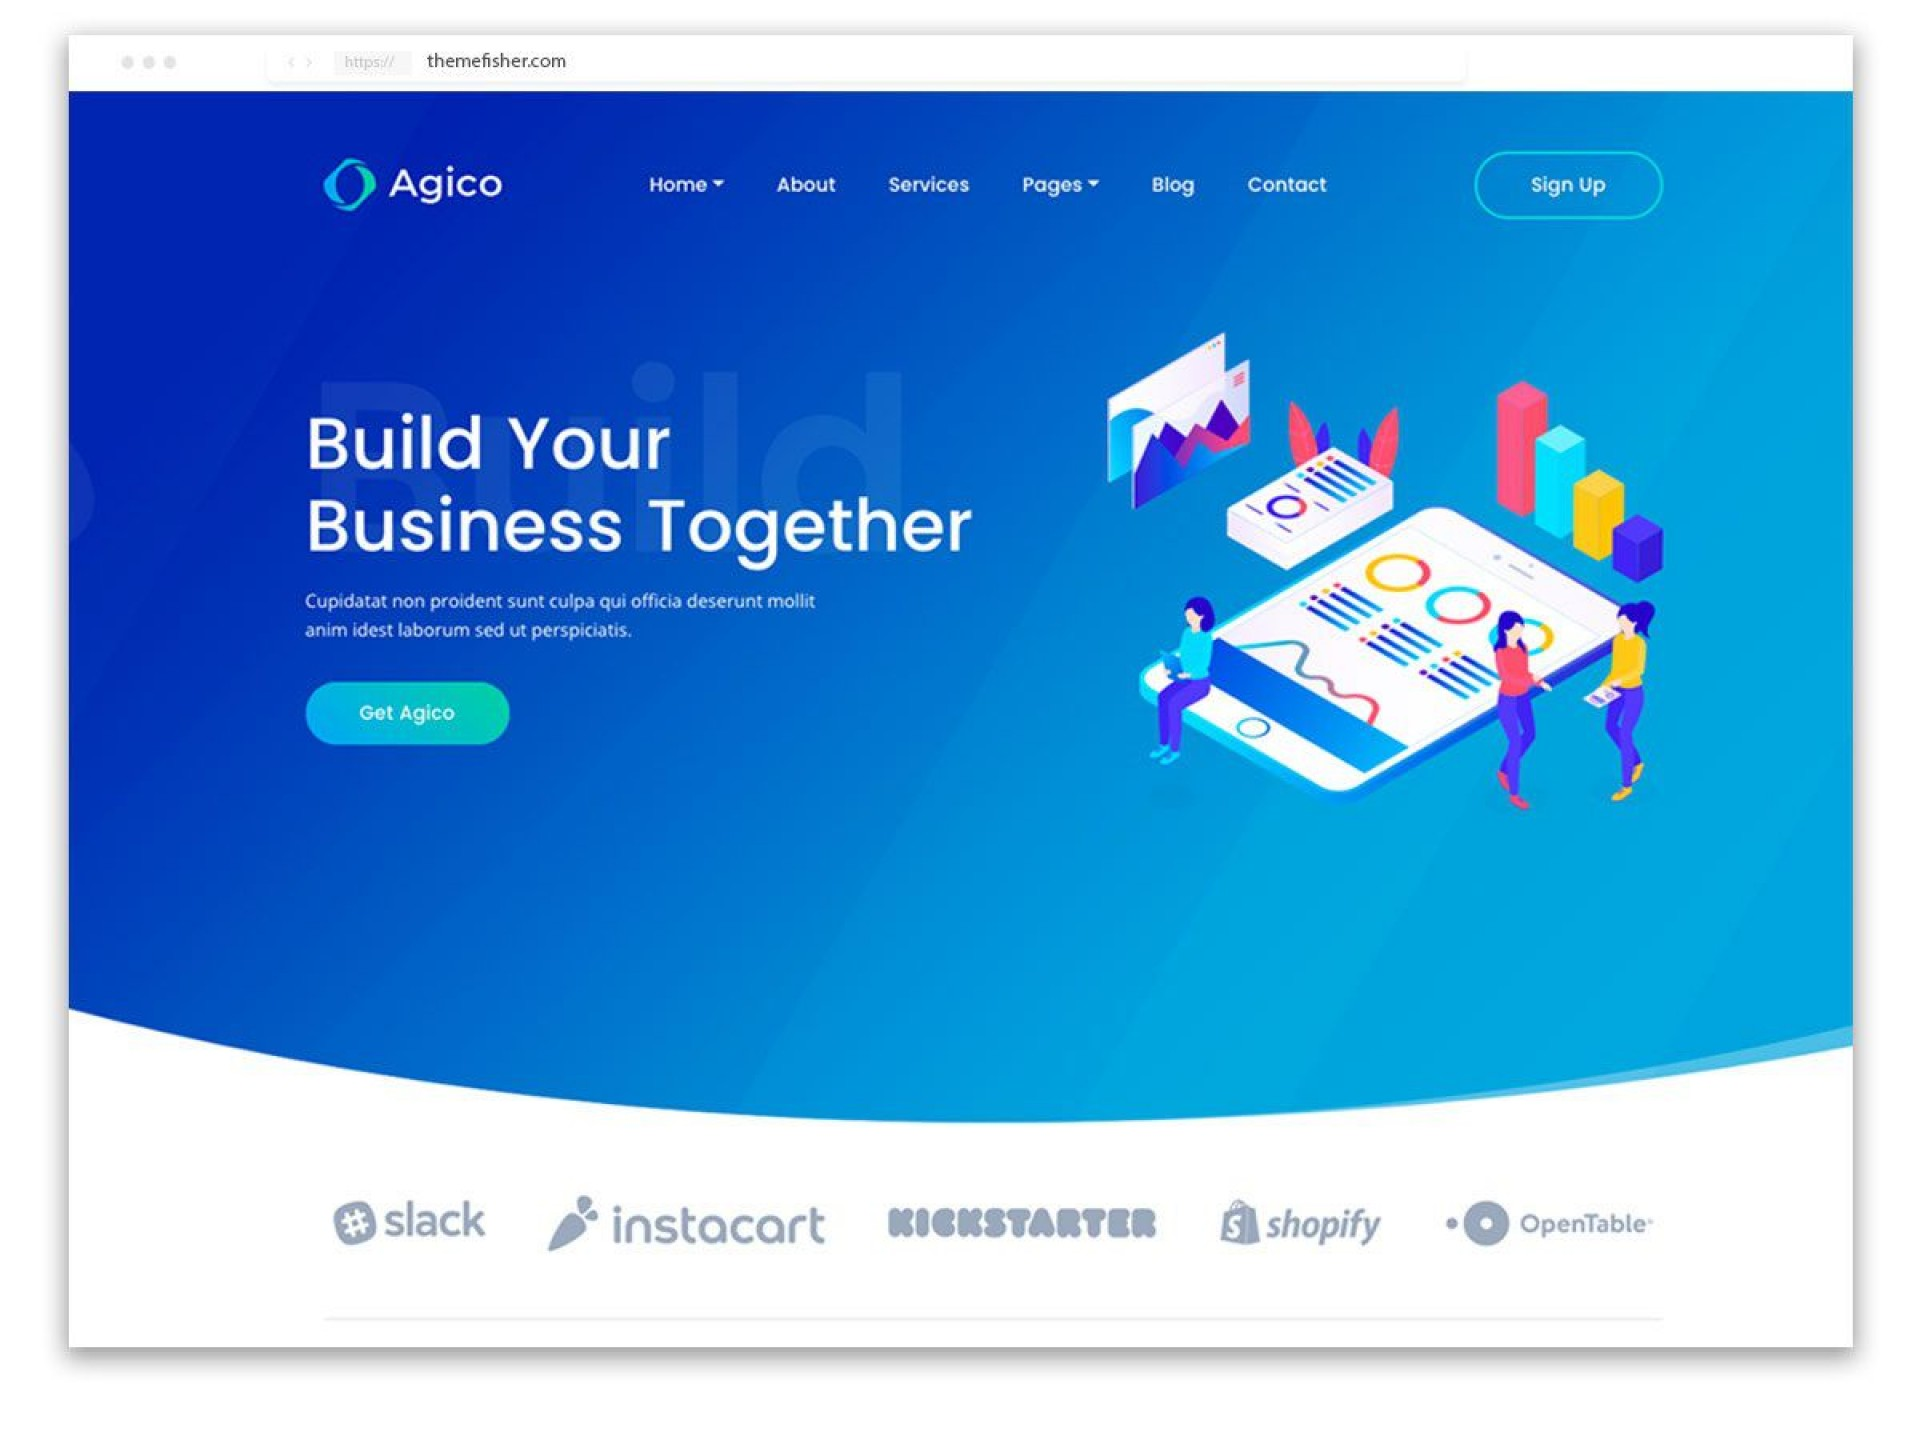 000 Imposing Free Responsive Landing Page Template Picture  Templates Pardot Html51920